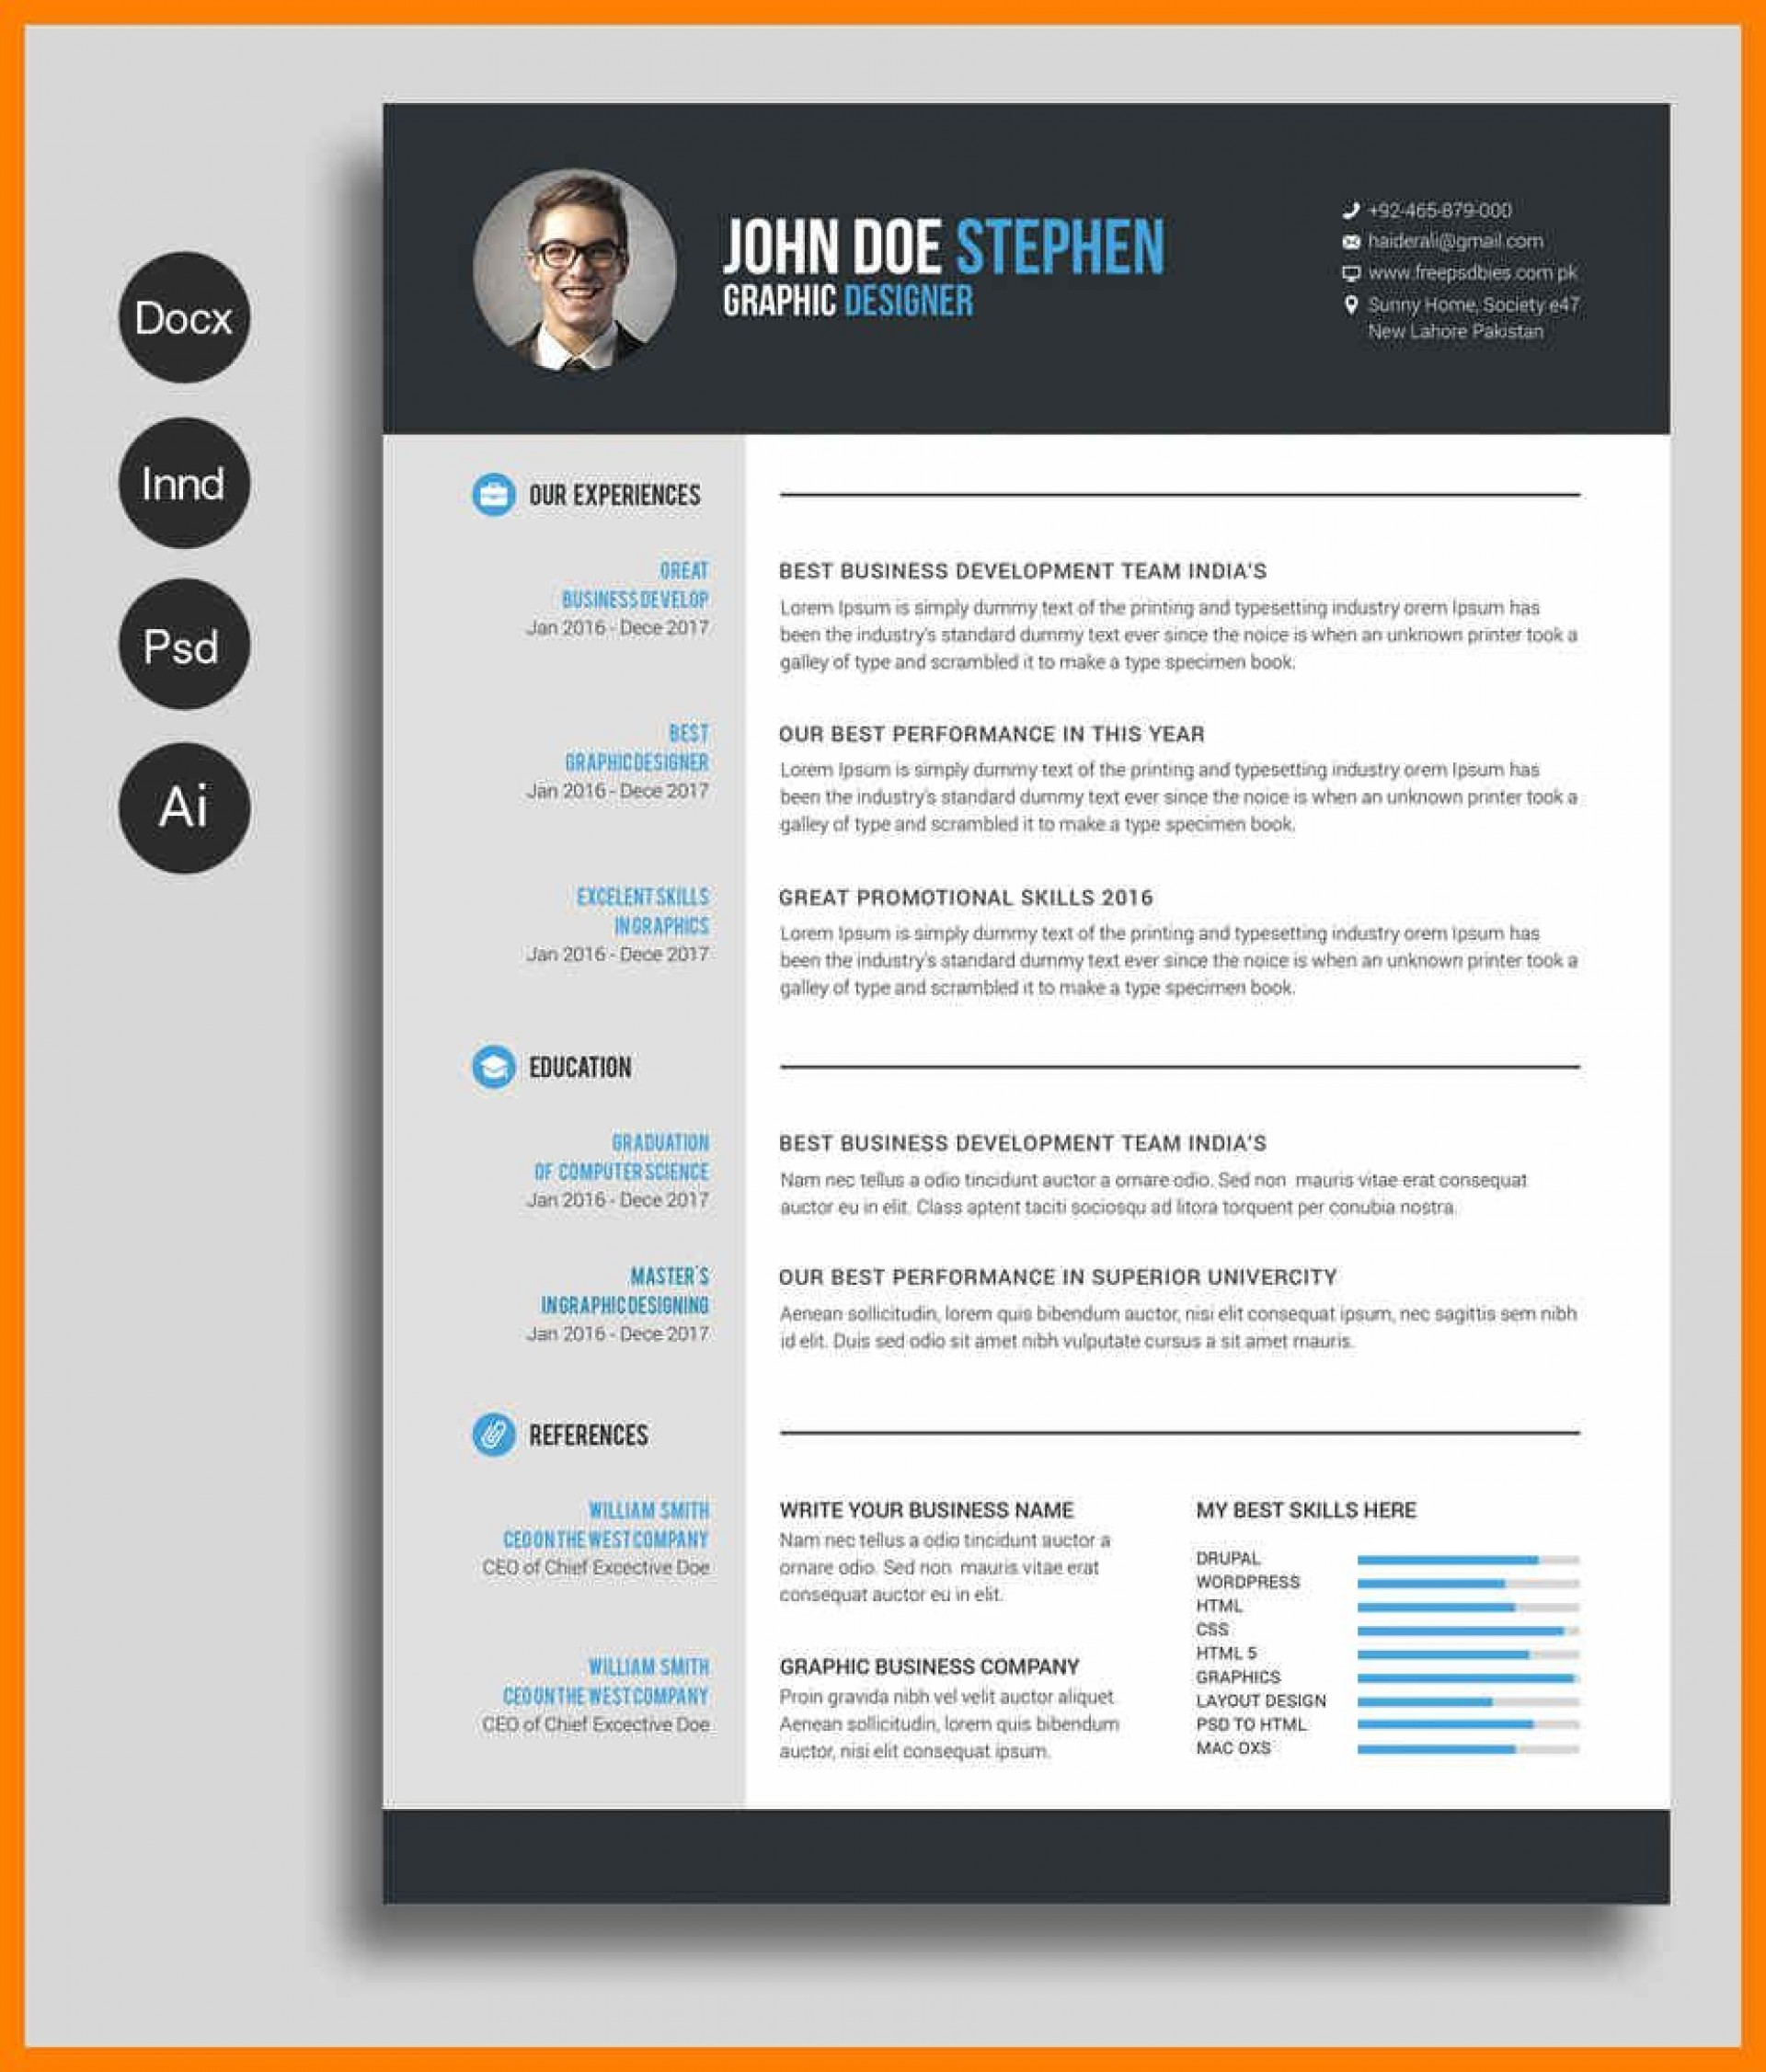 004 Phenomenal Download Template For Word Idea  Wordpres Free Resume 2007 Addres Label1920